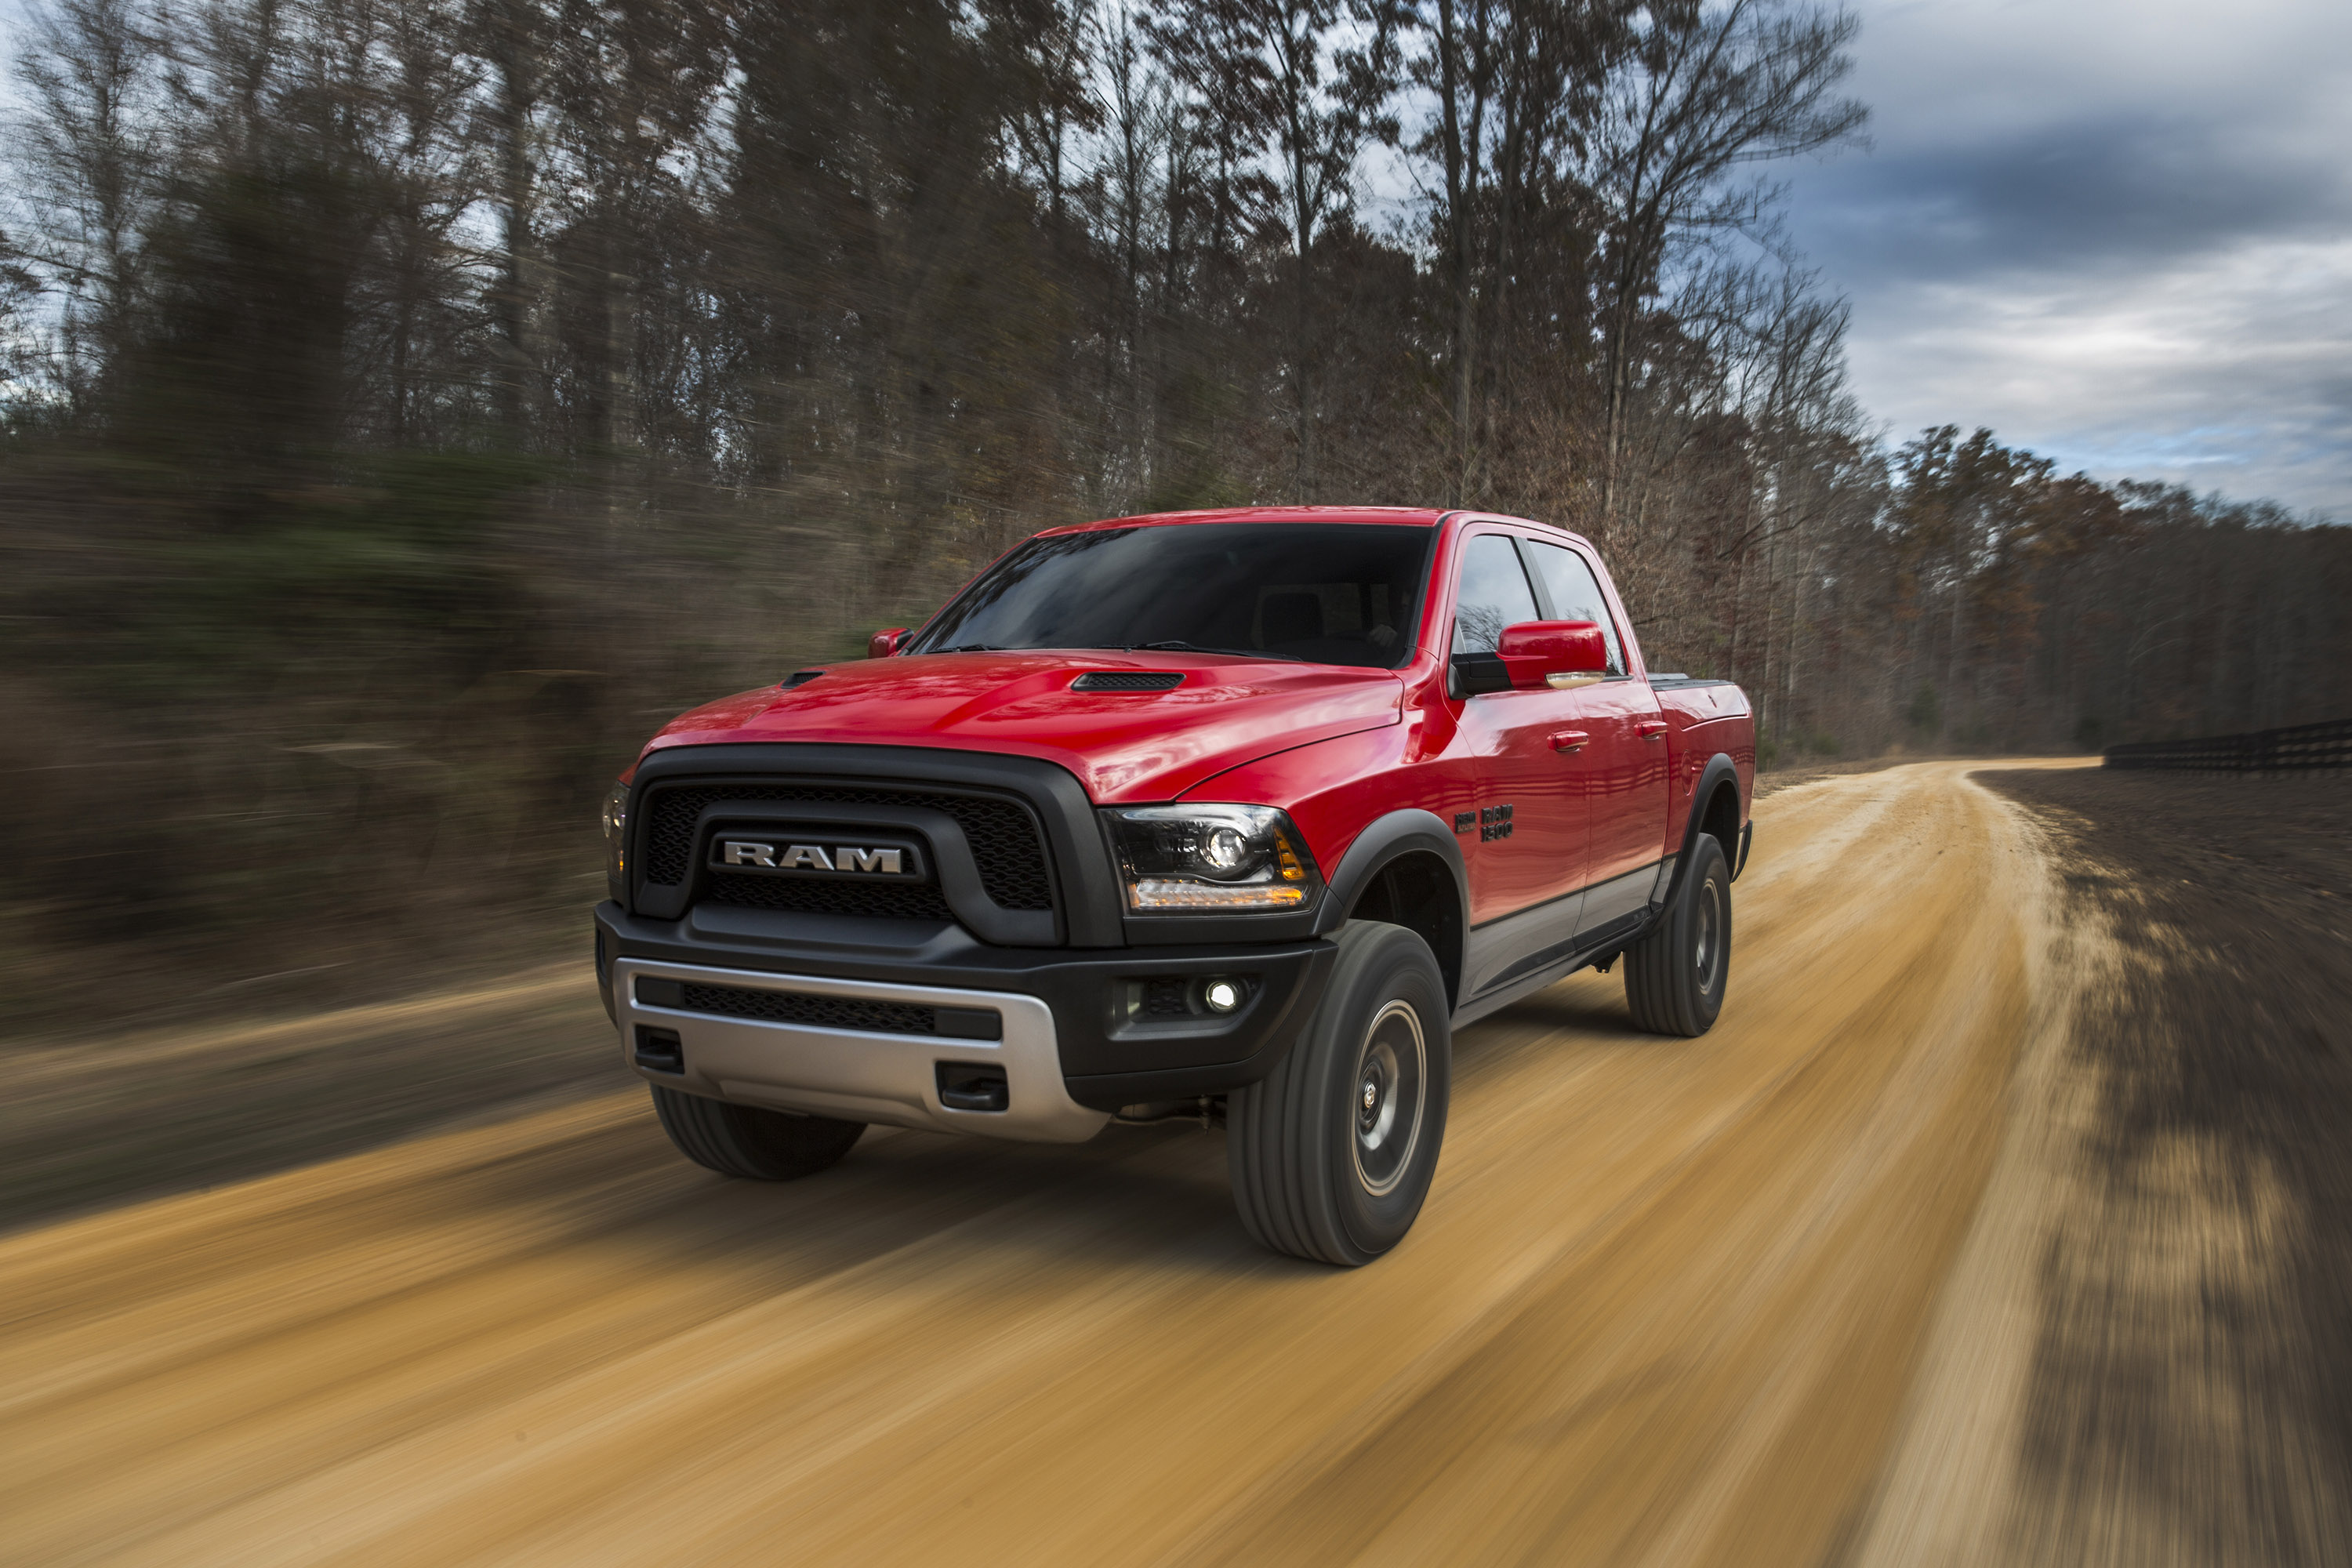 2015 Dodge Ram 1500 Rebel Hd Pictures Carsinvasion Com